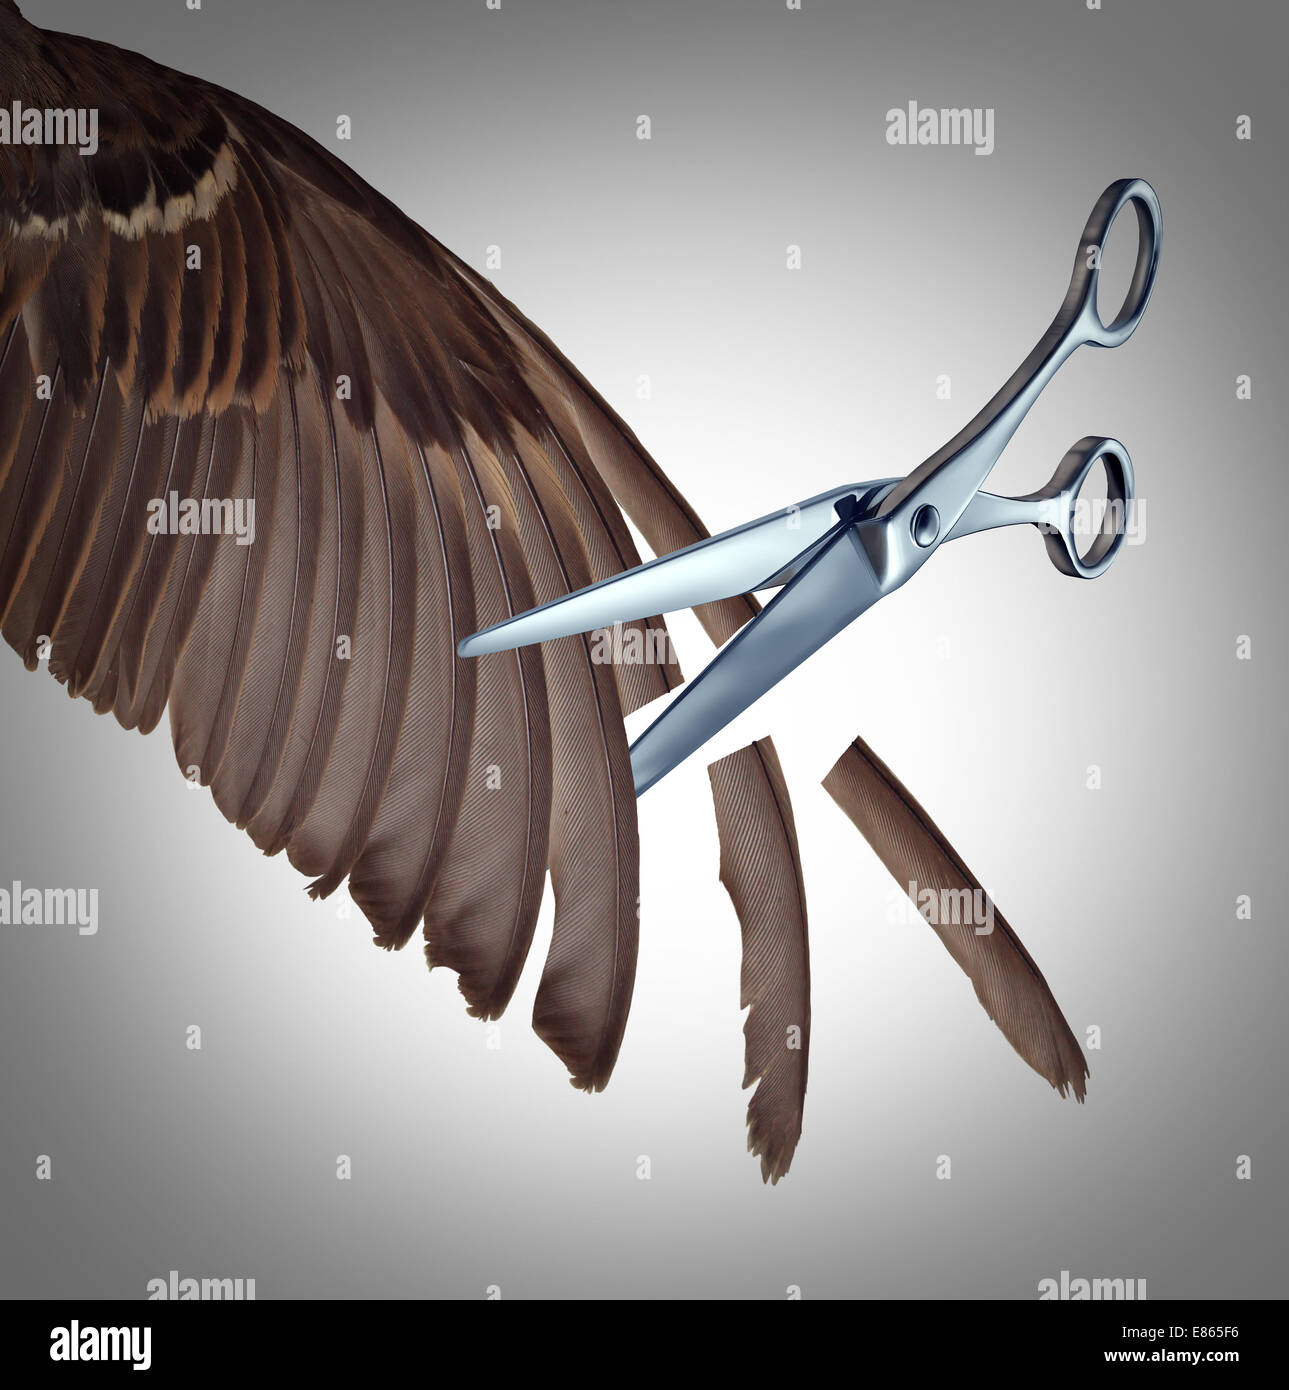 Losing freedom concept as a restriction metaphor to clip the wings of somebody with the feathers of a bird wing - Stock Image